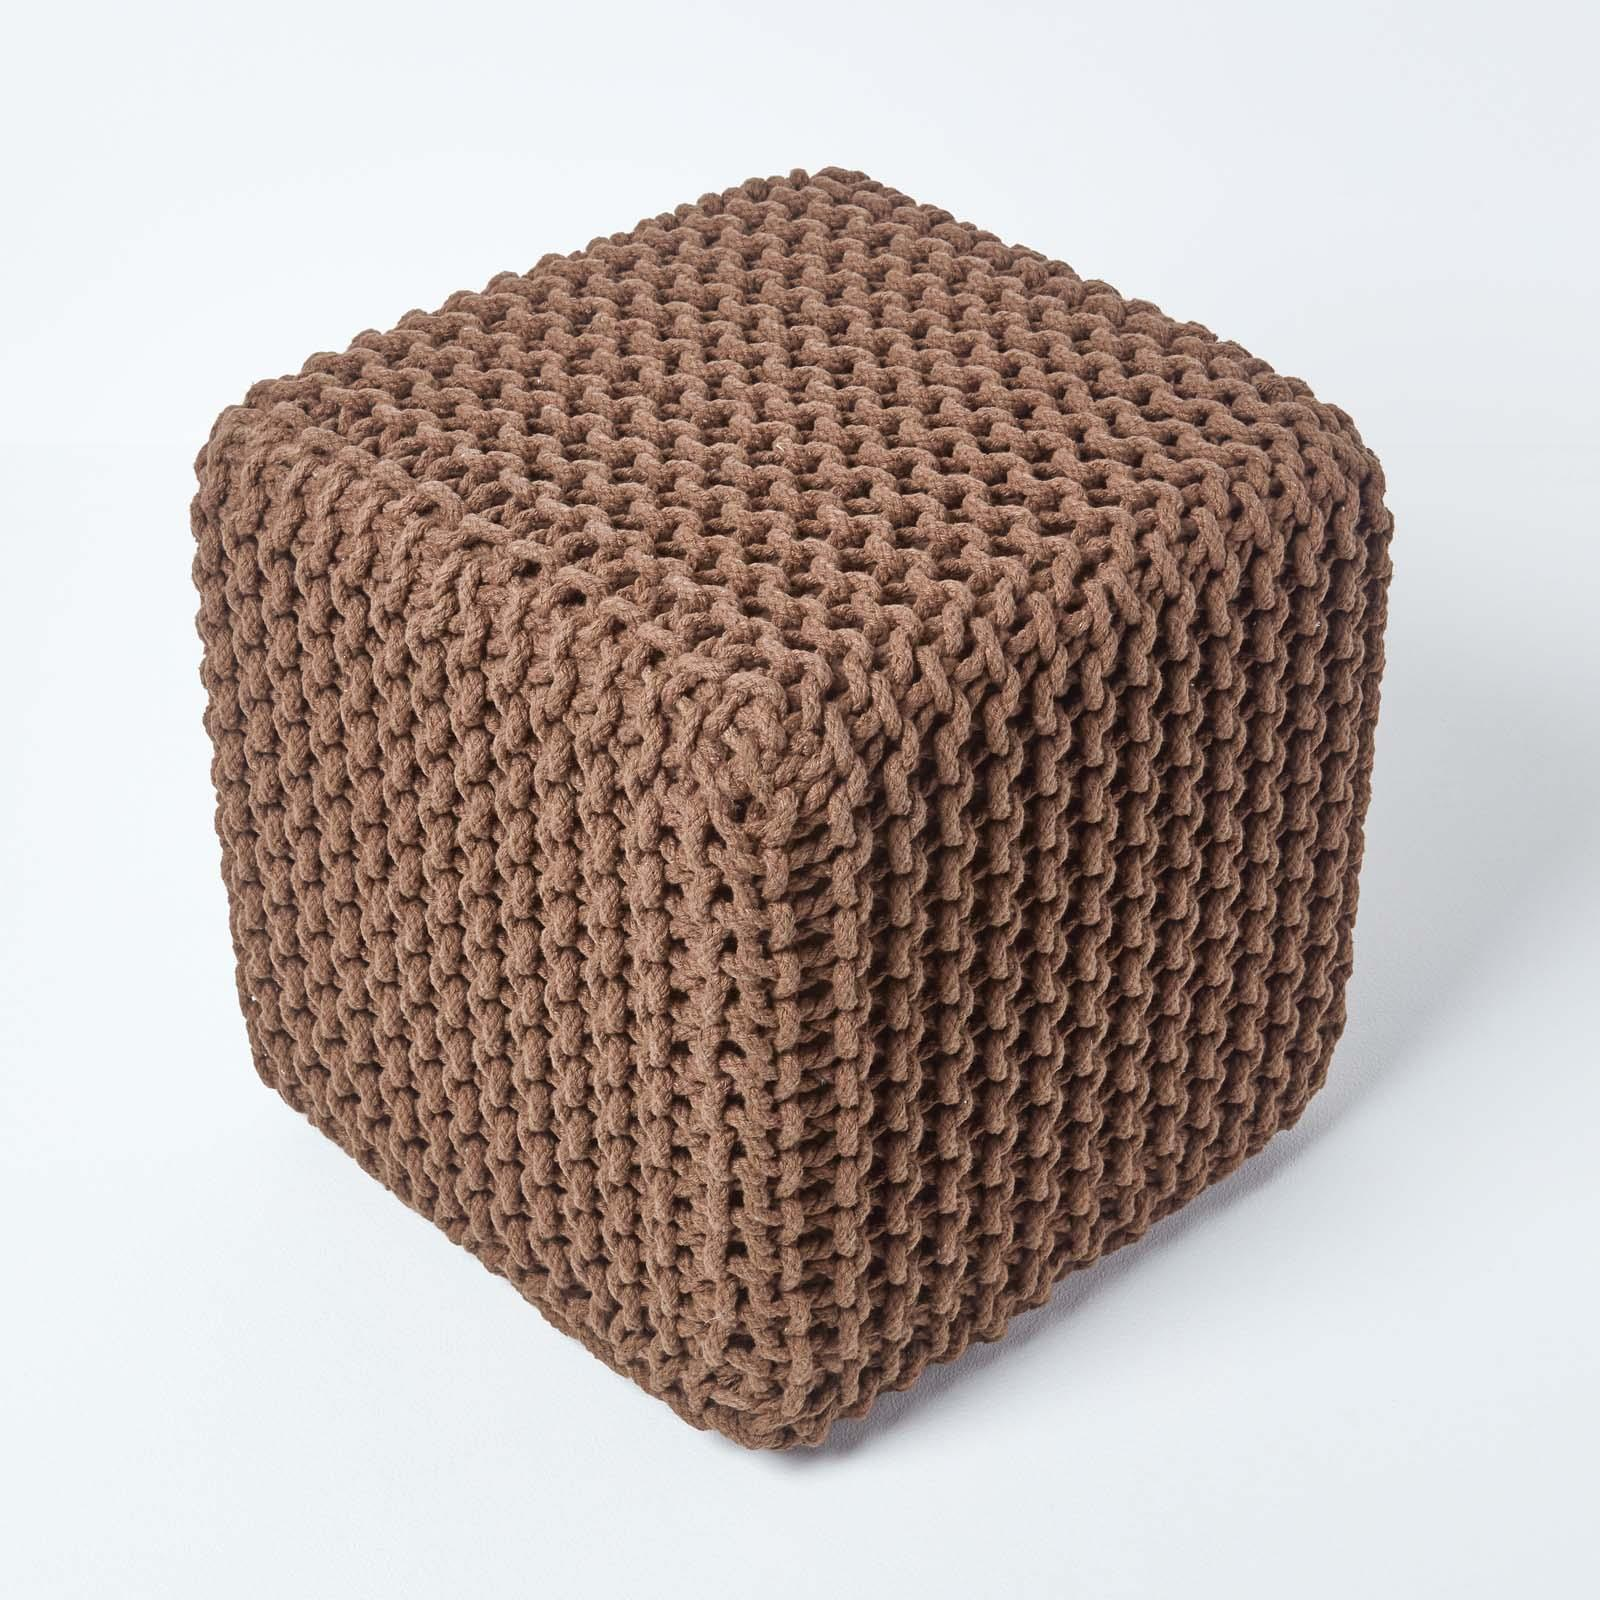 Hand-Knitted-100-Cotton-Pouffes-Round-Sphere-Or-Cube-Square-Chunky-Footstools thumbnail 30